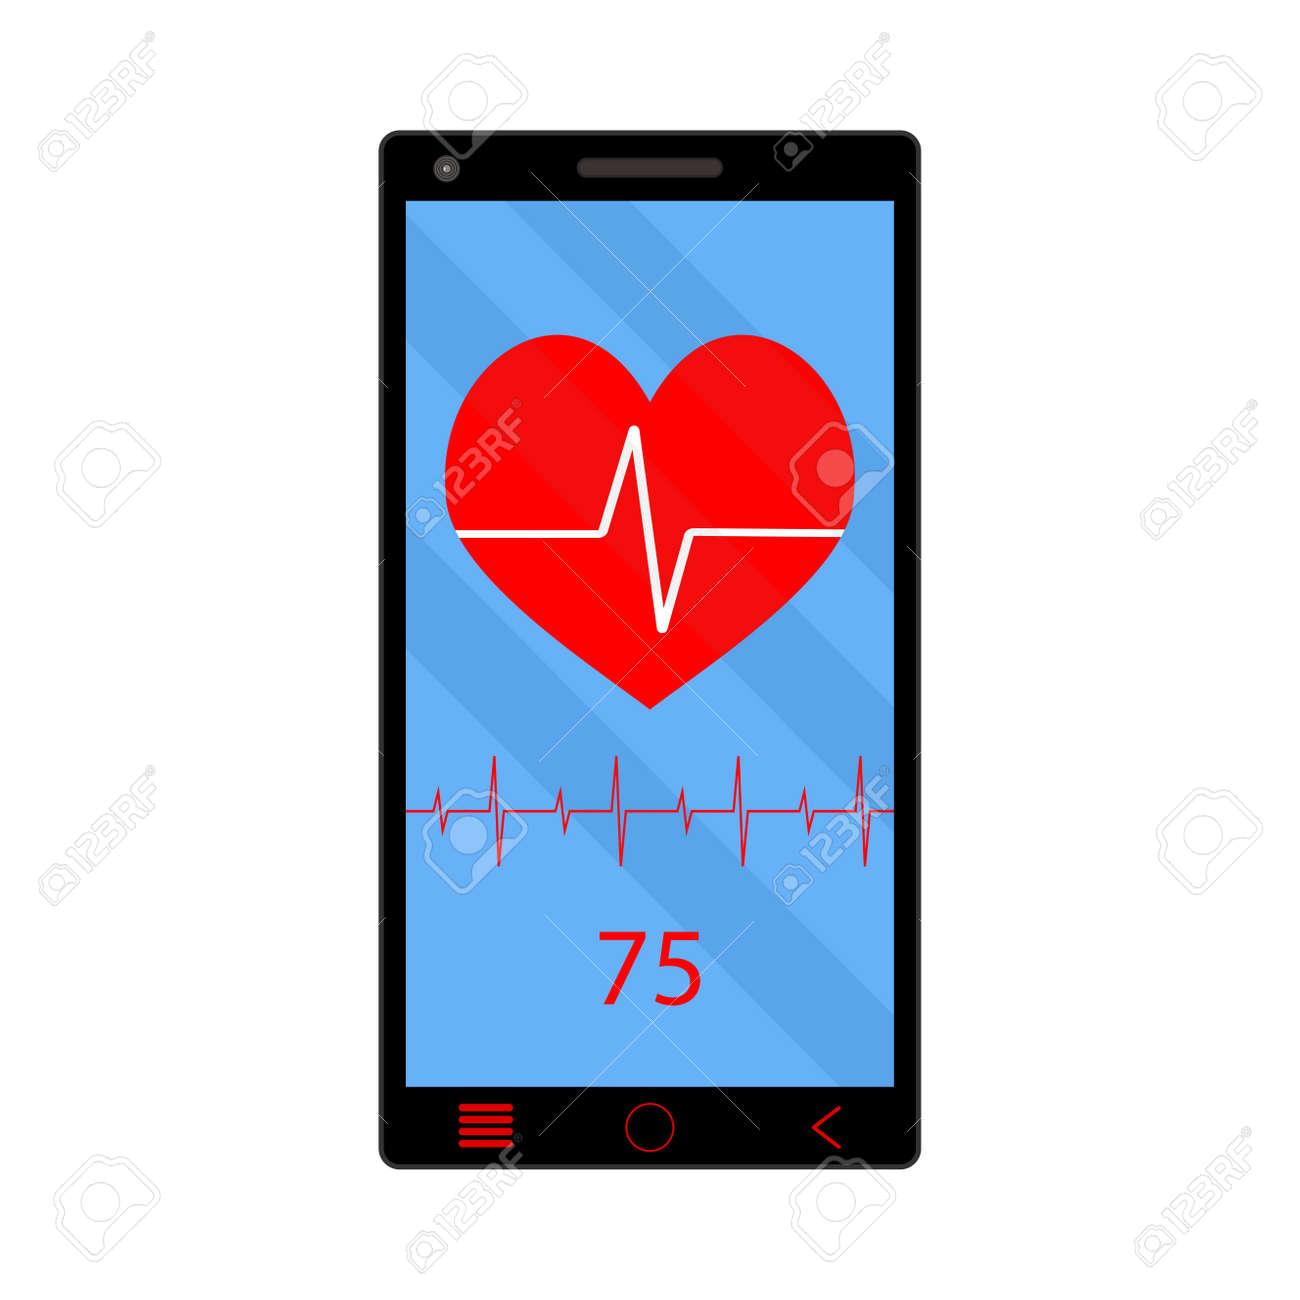 App heart rate monitor on phone  Technology smartphone, health